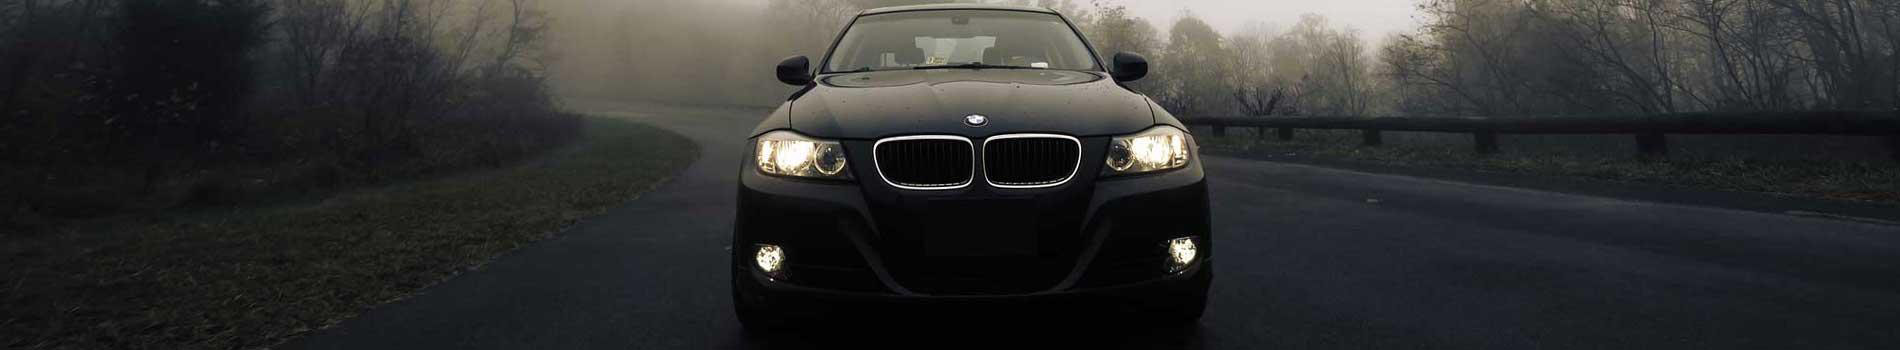 BMW / Mercedes / Porsche / Audi Repair and Maintenance in St. George, UT